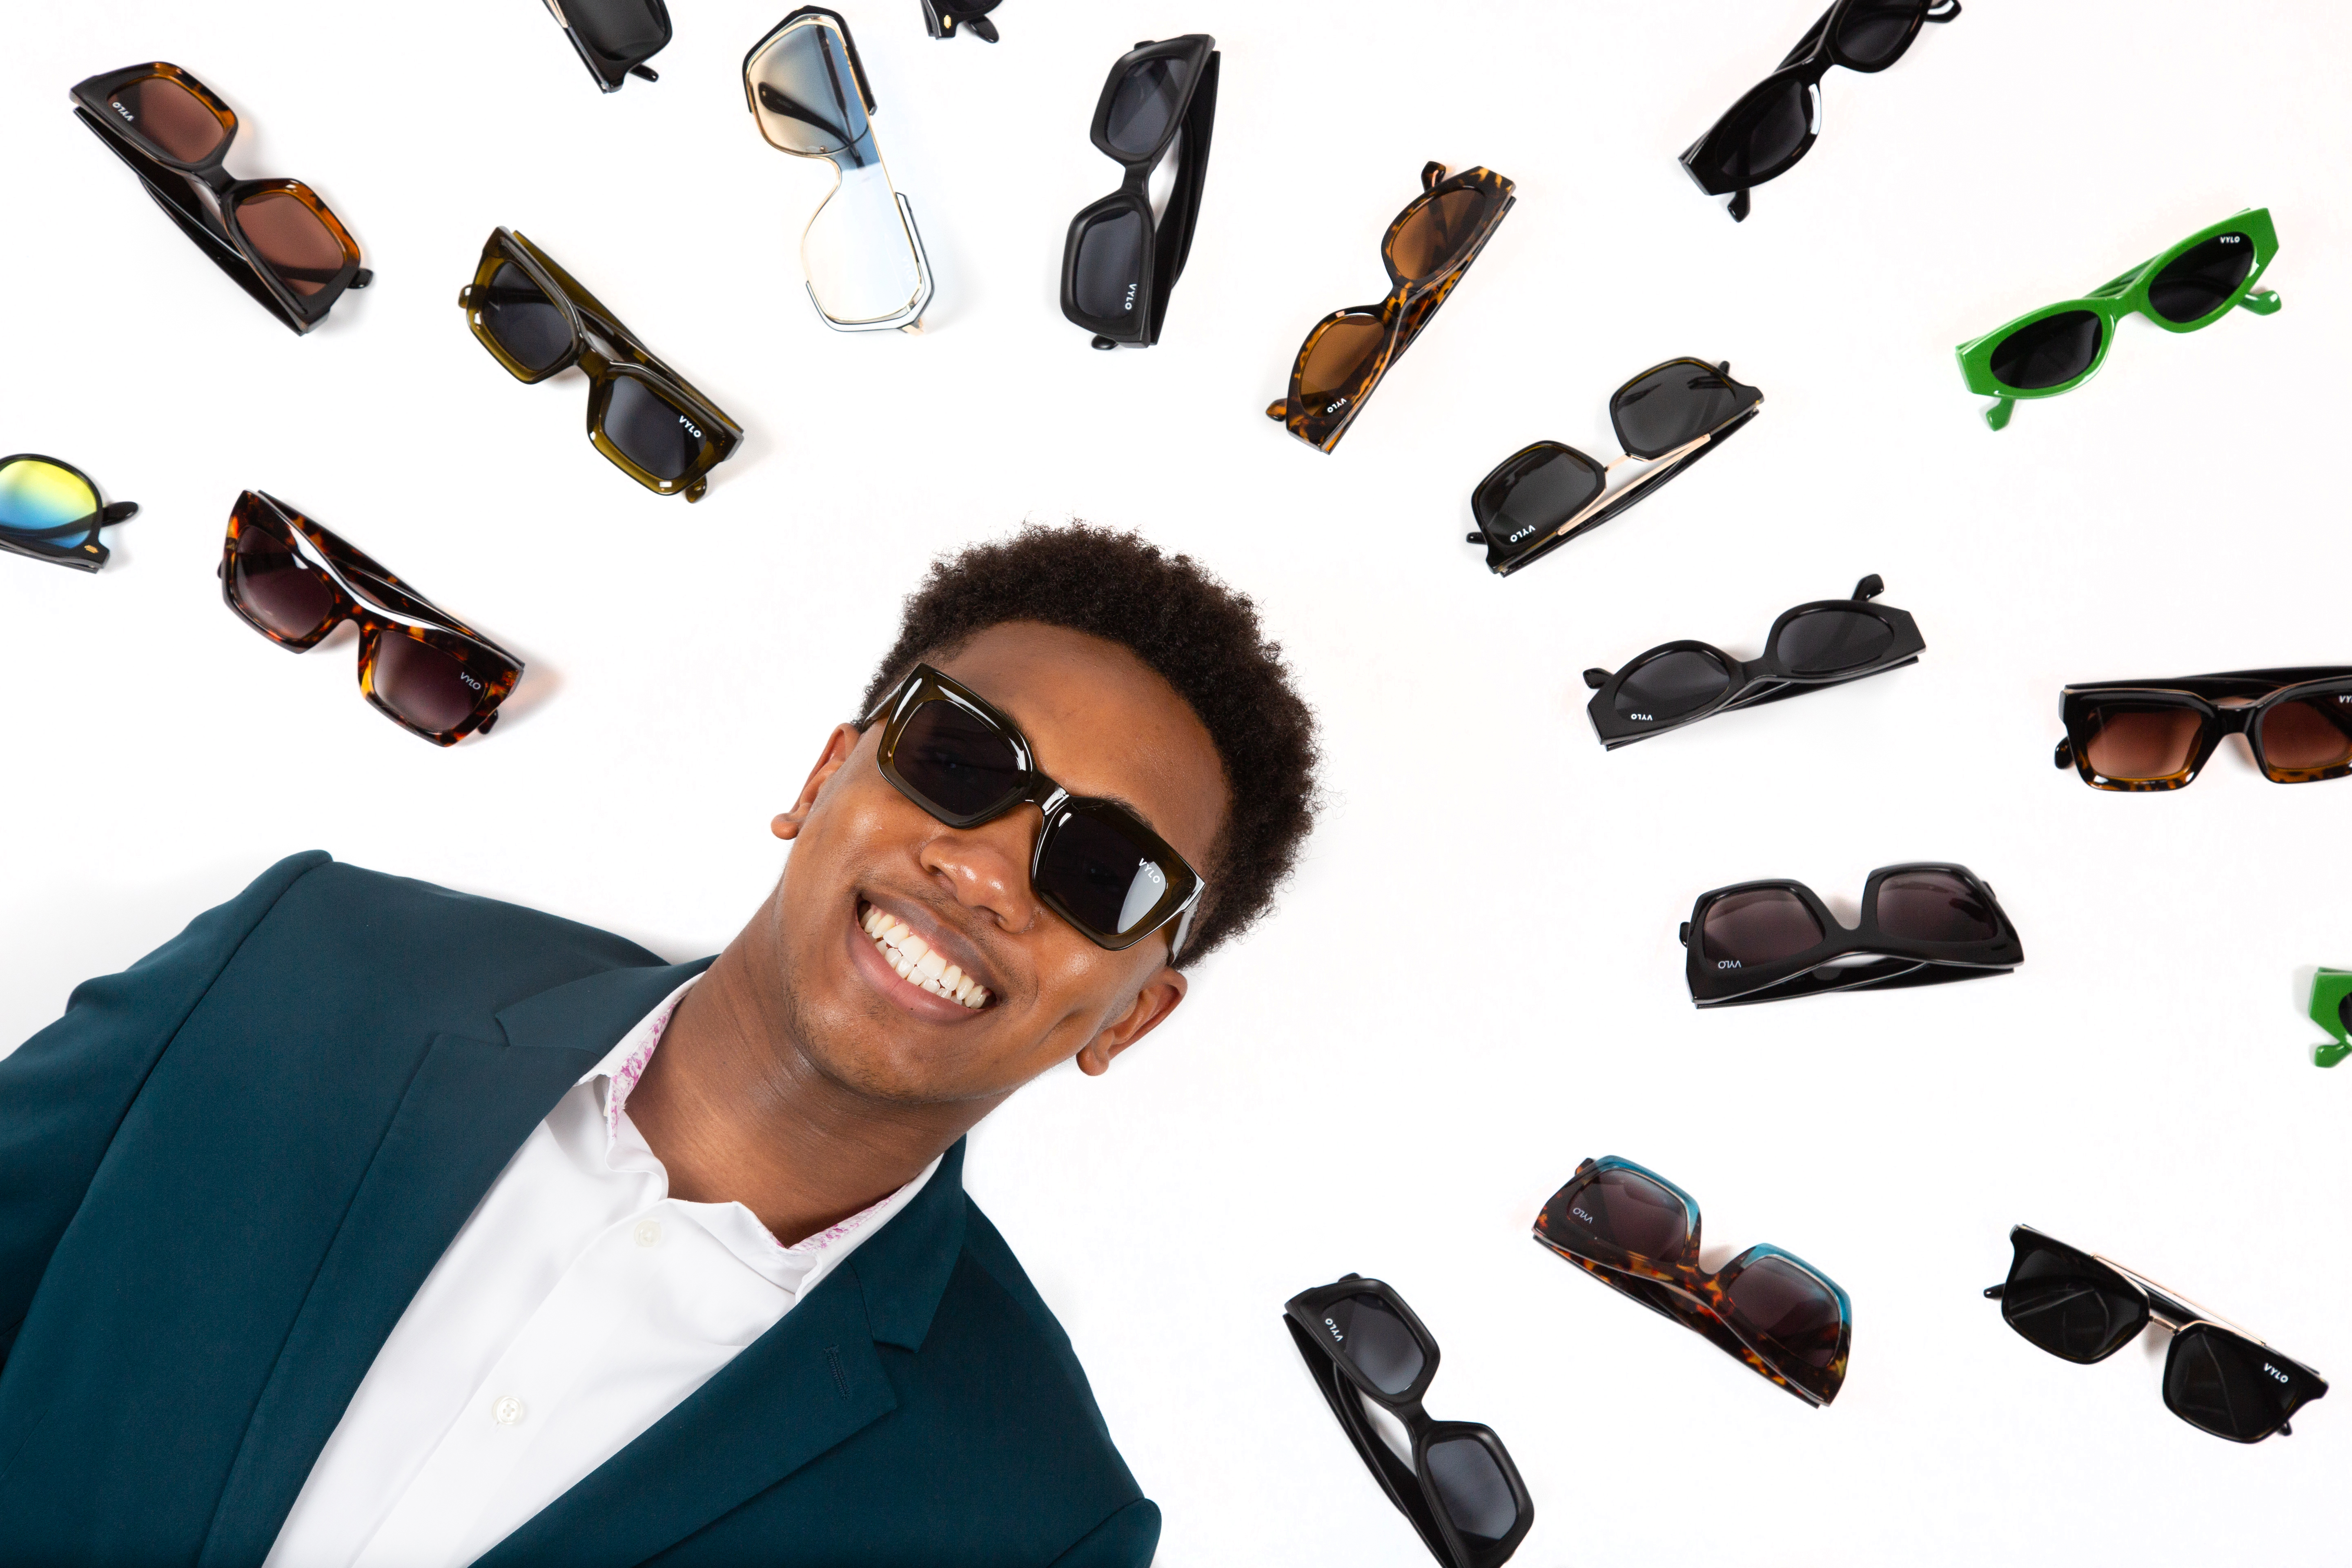 Tyser, from chest up, lays down with an array of sunglass styles displayed around his head